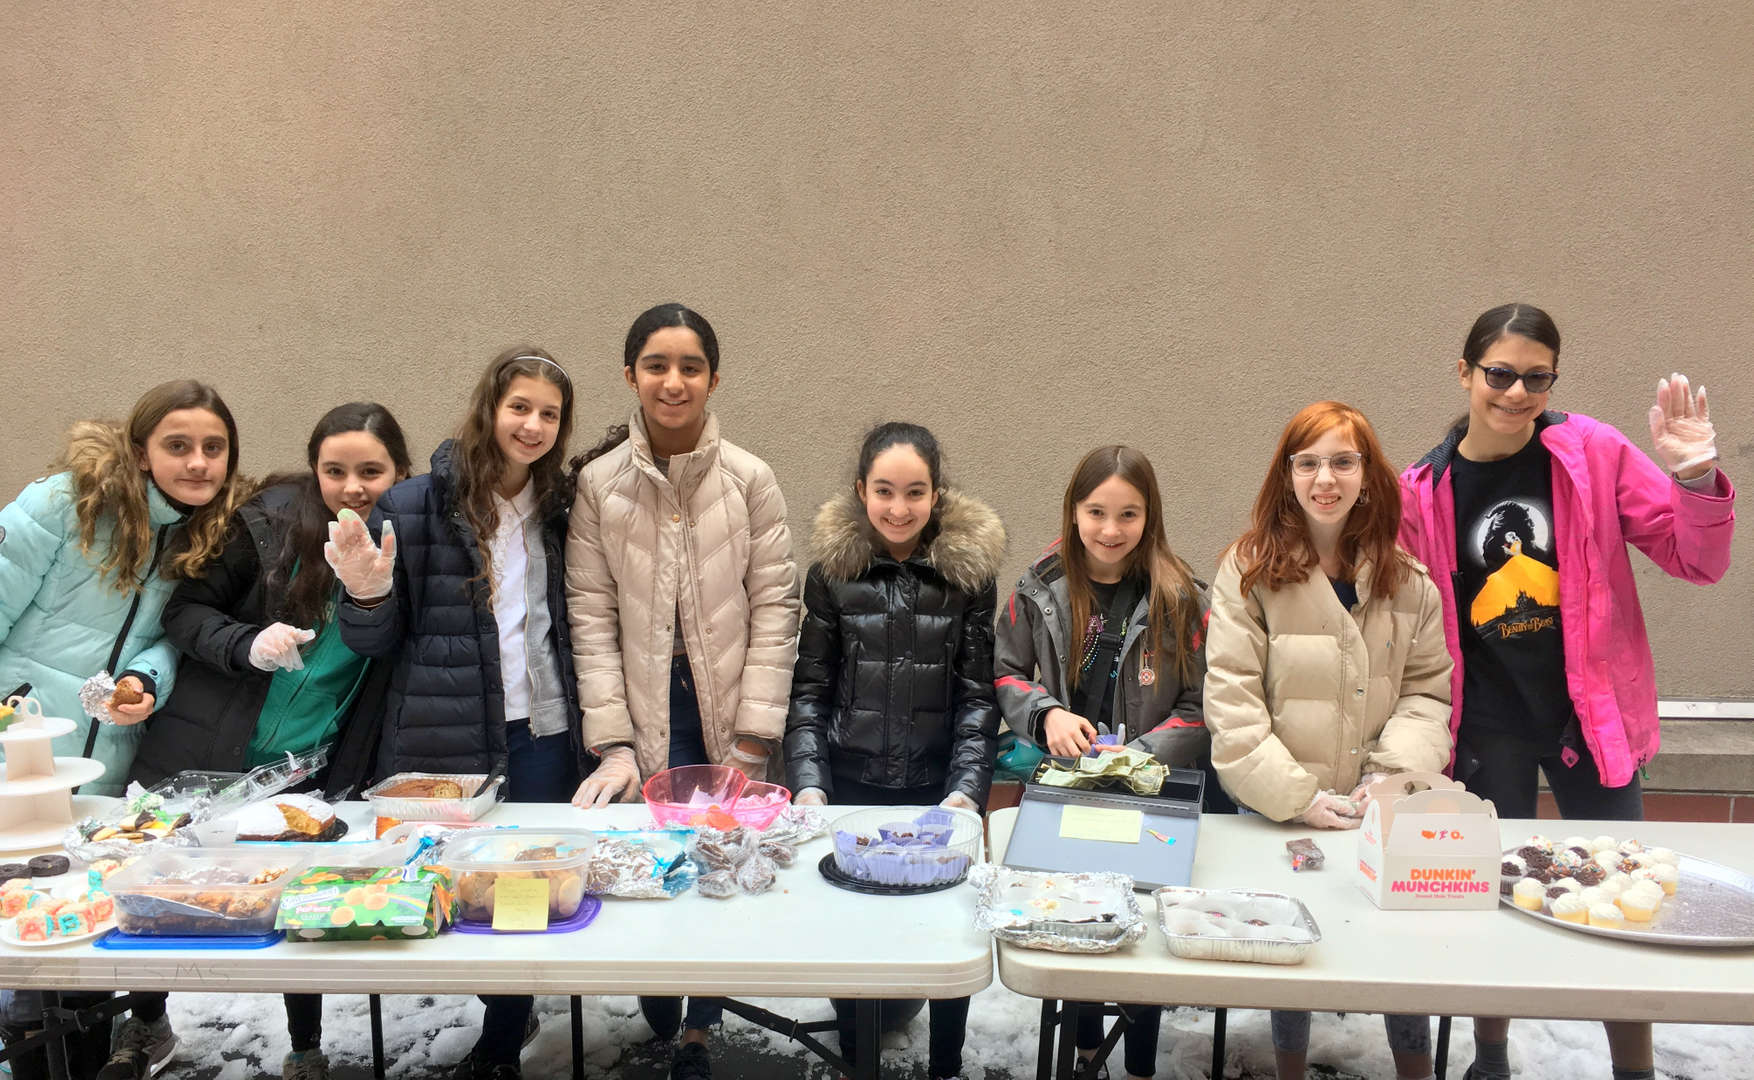 Students manning the bake sale table outdoors